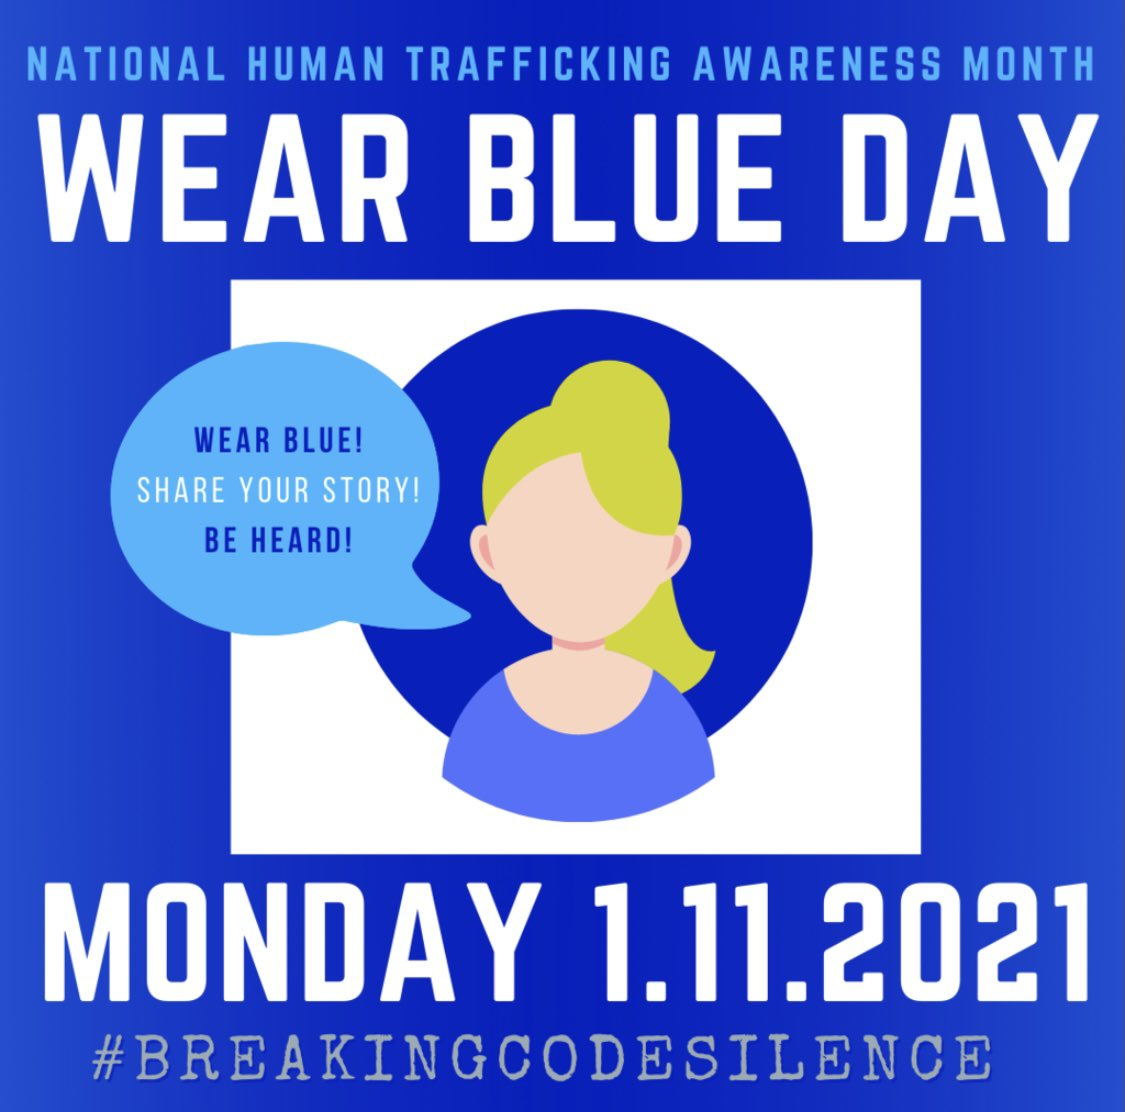 """It'sNational Human Trafficking Awareness Day!Tell your """"transport"""" story or forced labor you experienced in the TTI.#WearBlueDay #BreakingCodeSilence #BenefitsTraffickingisHumanTrafficking"""